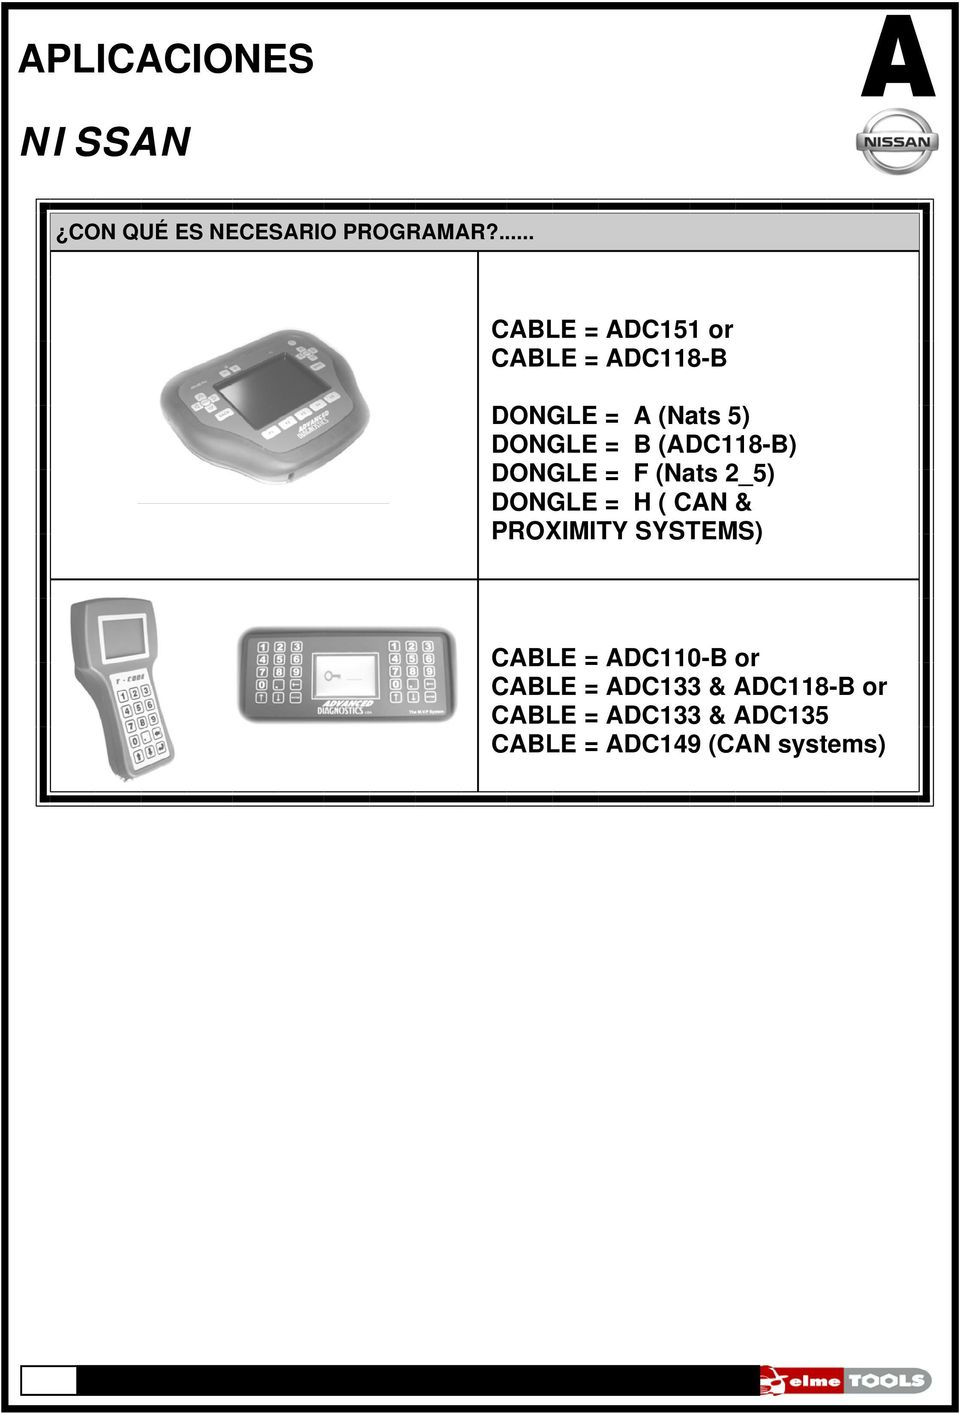 (ADC118-B) DONGLE = F (Nats 2_5) DONGLE = H ( CAN & PROXIMITY SYSTEMS)